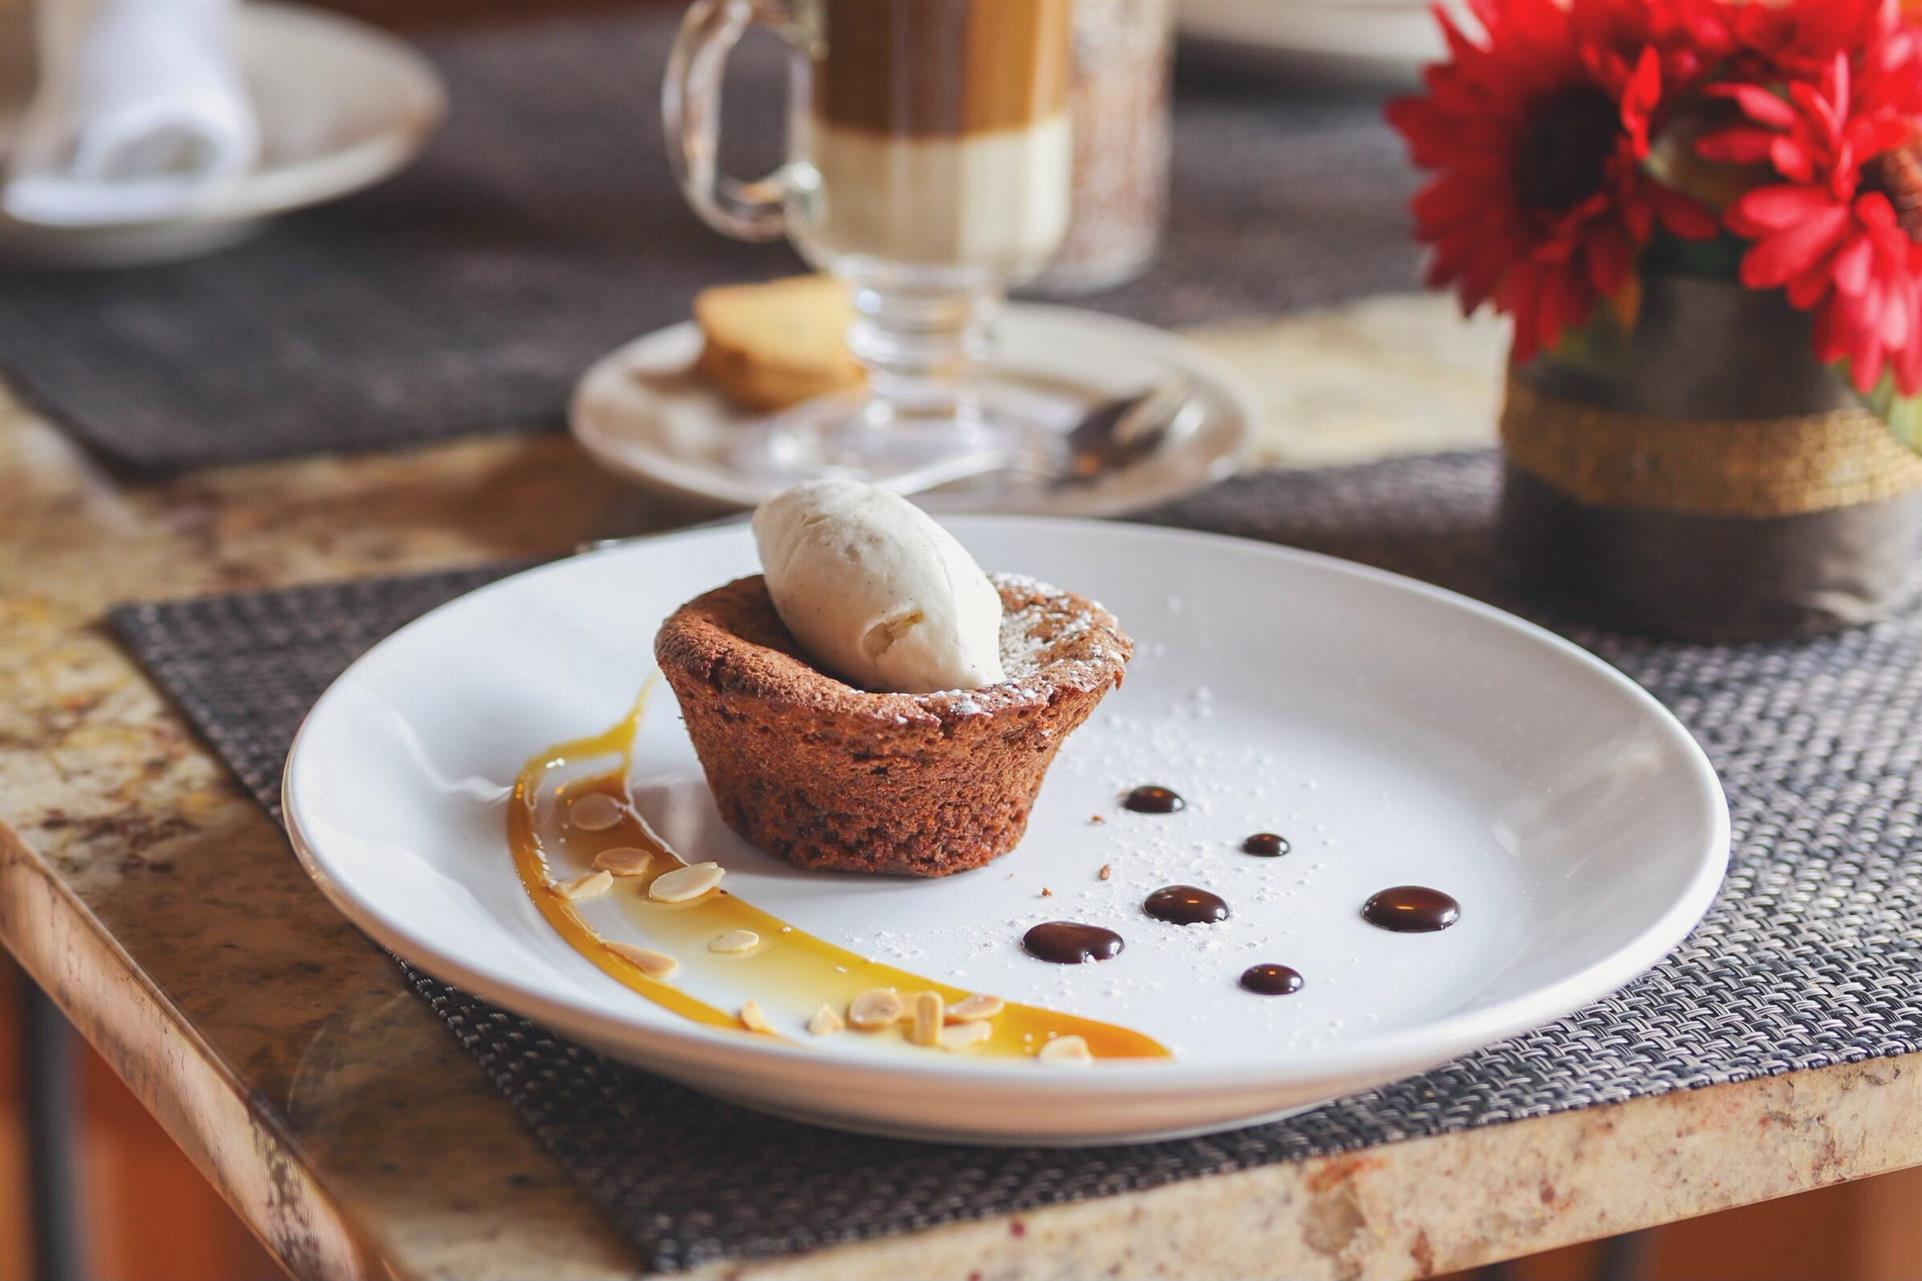 warm flourless chocolate cake served with chopped roasted almonds and topped with vanilla ice cream